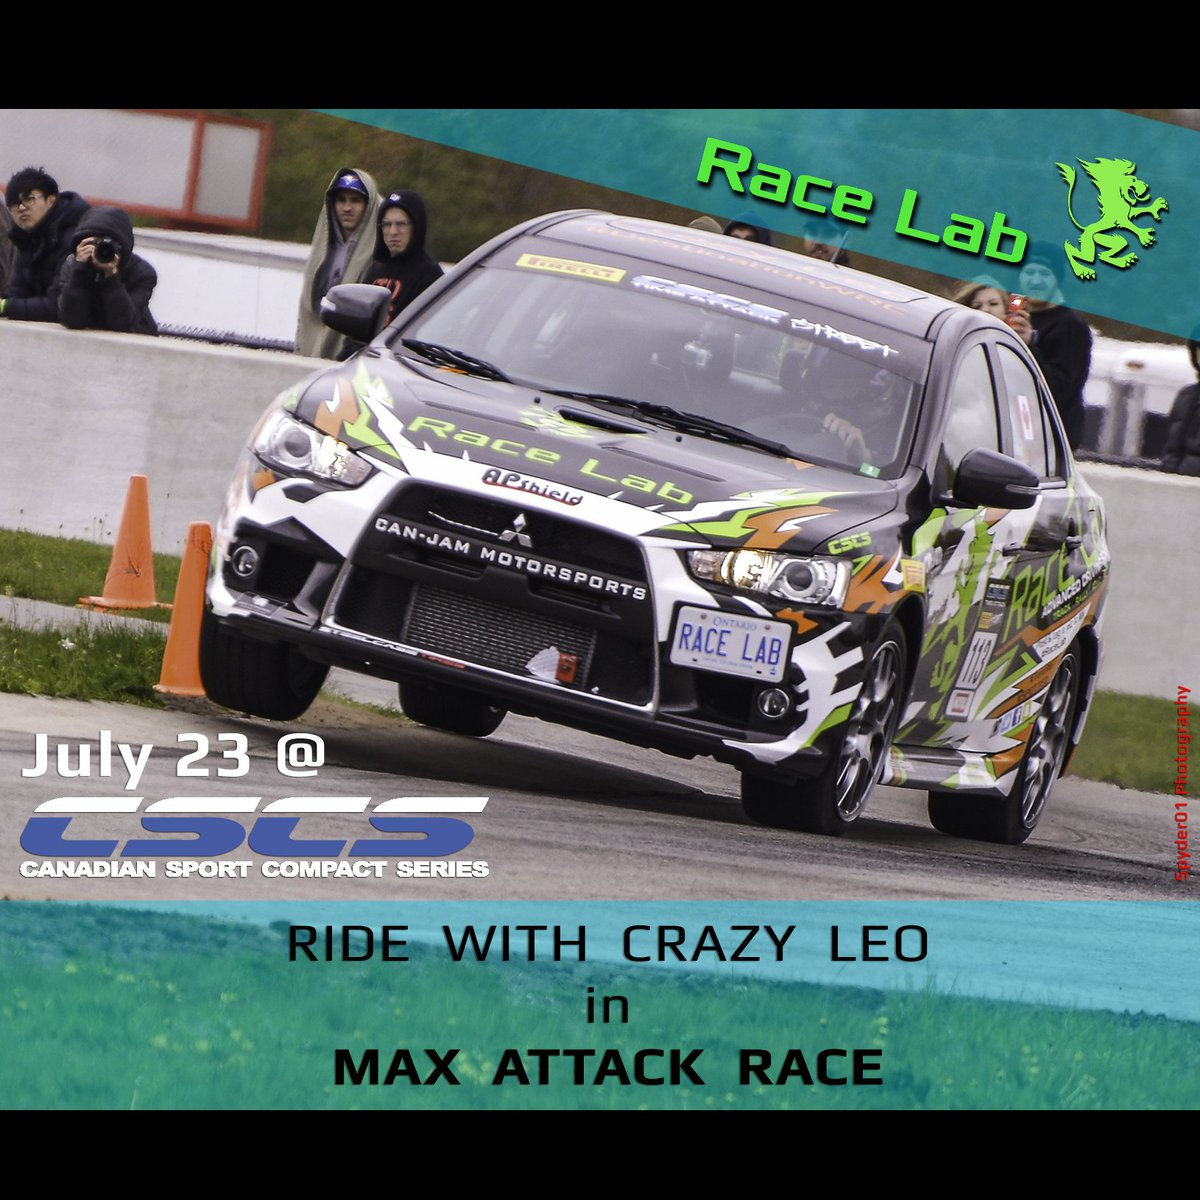 Crazy Leo On Twitter Experience Cscs Race Lab Present A Chance To Win Shotgun Ride With Me During This Sundays Max Door2door Rt